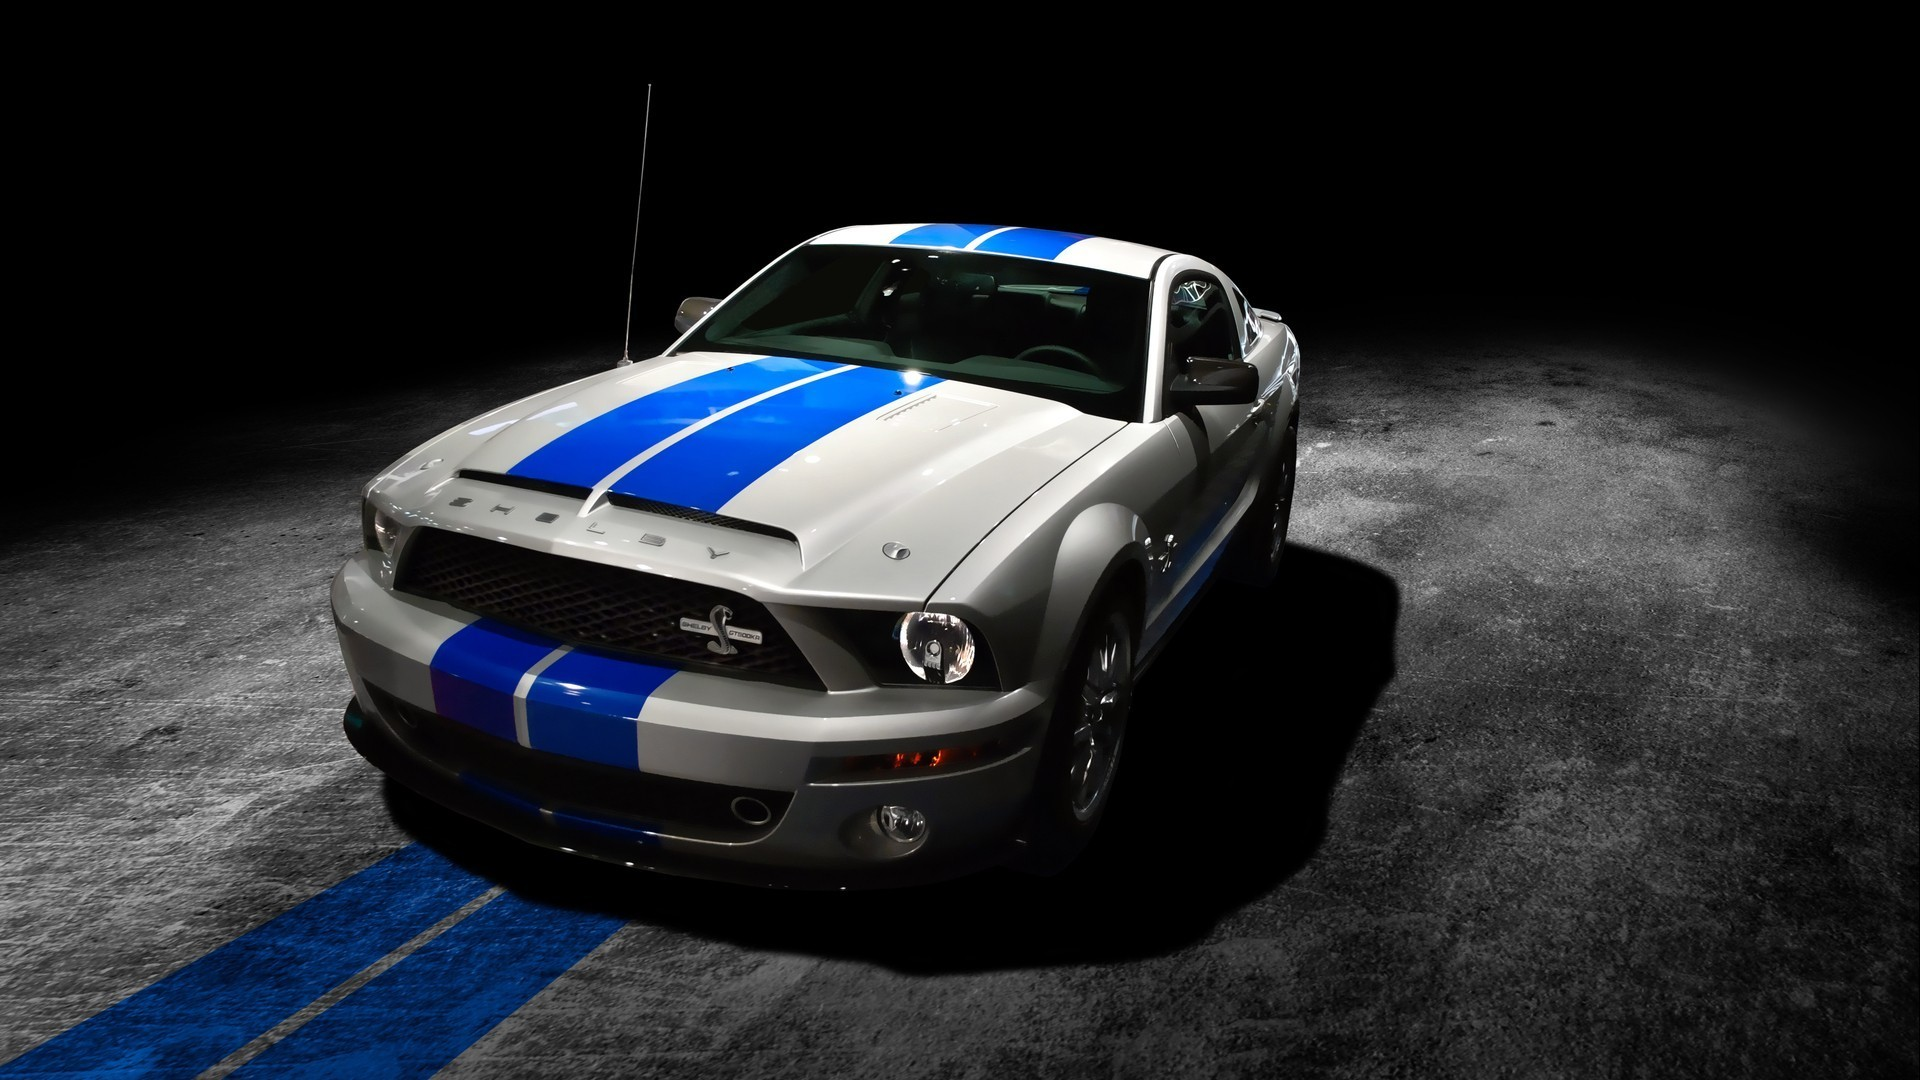 1920x1080  Cool Muscle Car Wallpapers Iphone